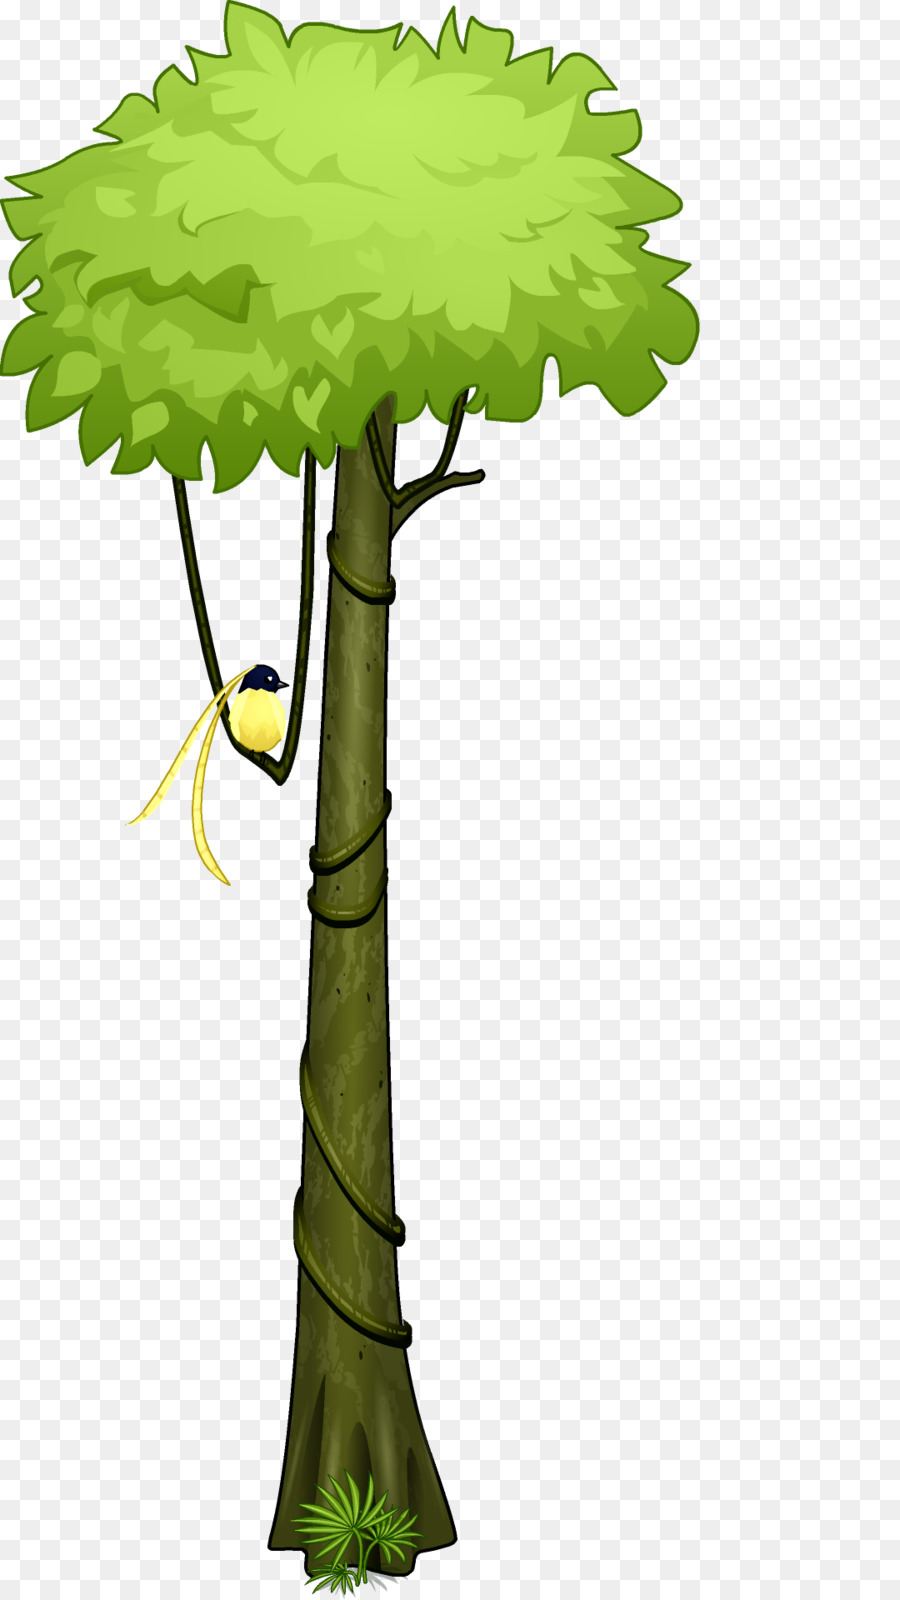 Tree Plants Forest Transparent Png Image Clipart Free Download